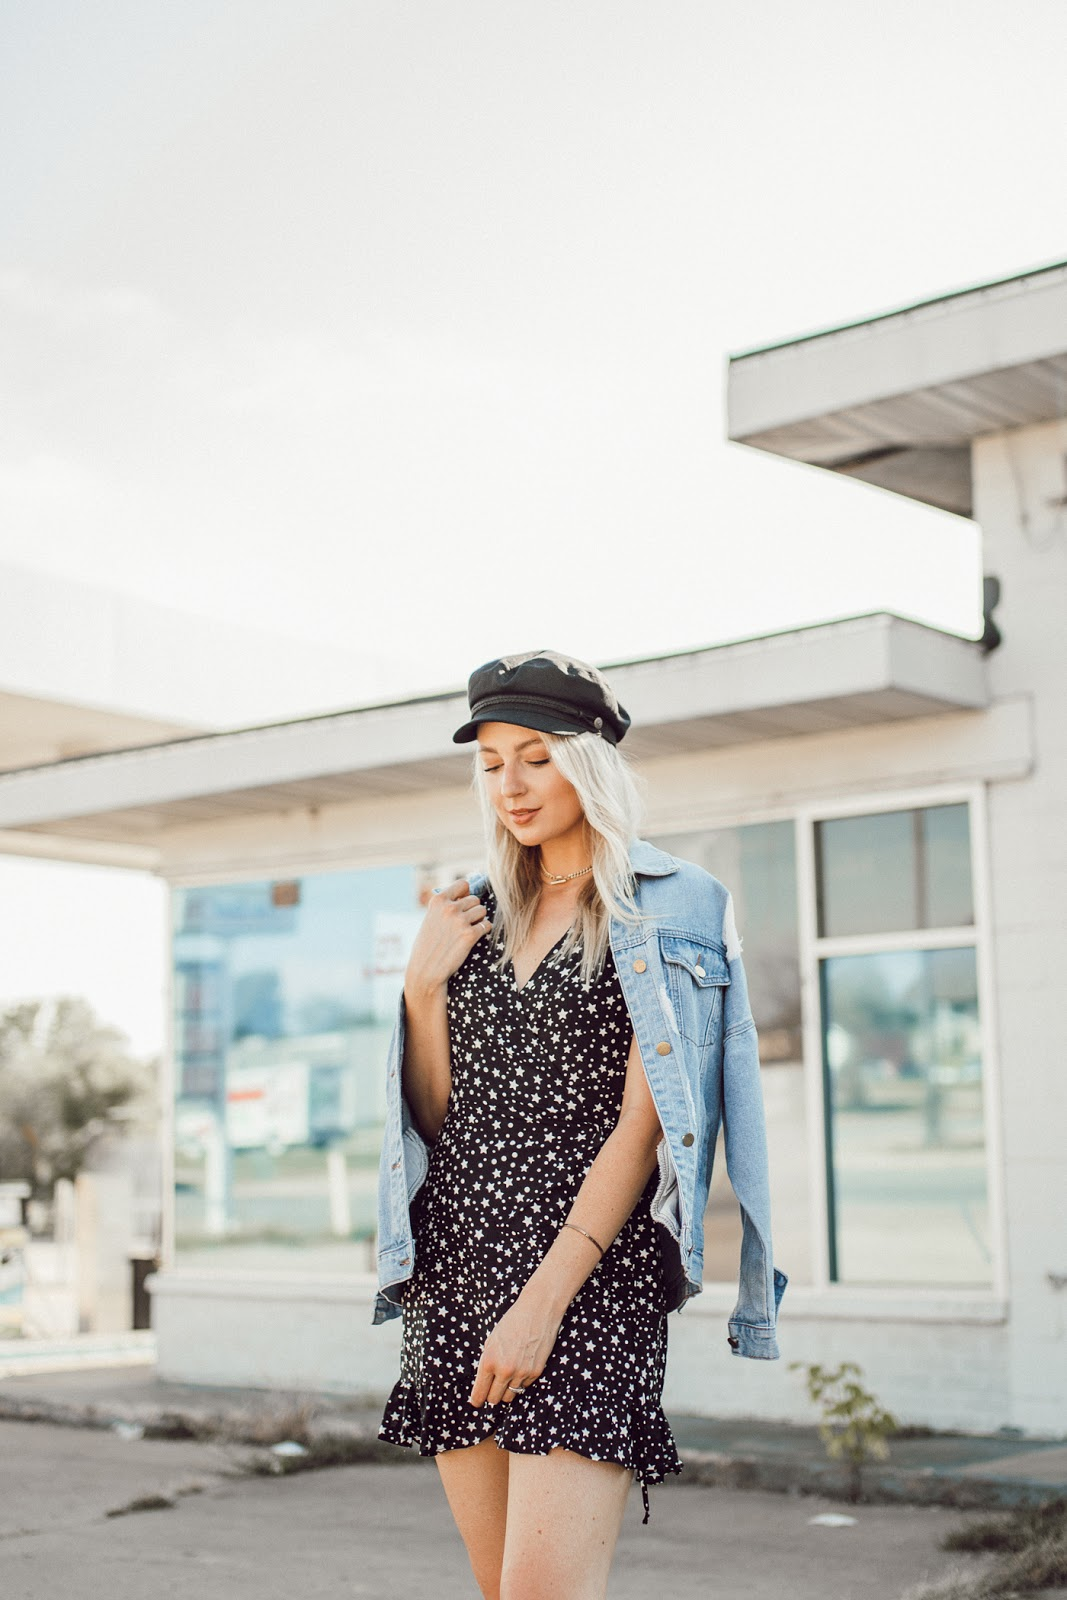 star print dress with a denim jacket and hat